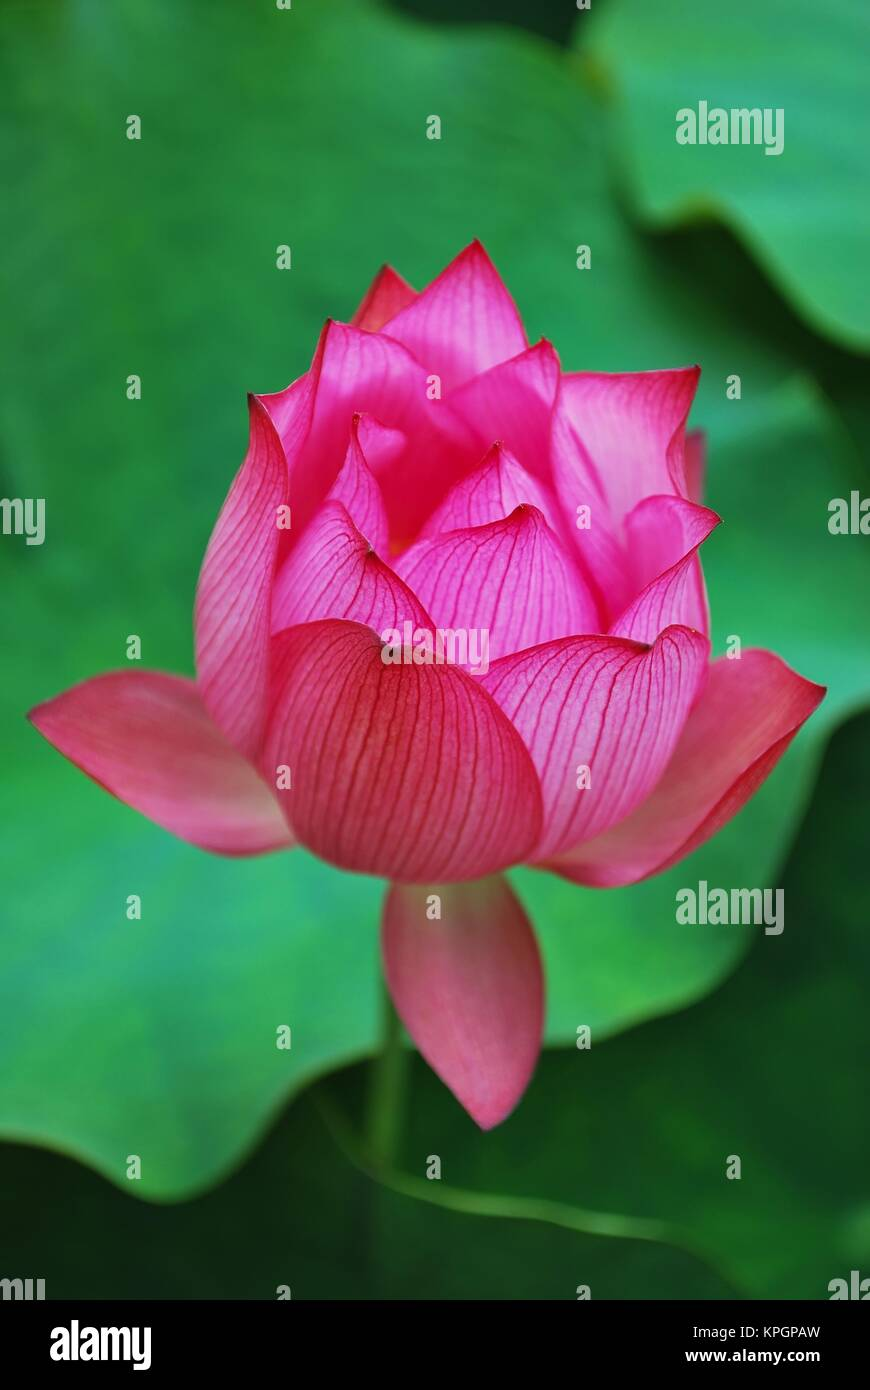 Lotus flower bud symbolizing religion buddhism purity serenity lotus flower bud symbolizing religion buddhism purity serenity zen the summer season buddha enlightenment bliss joy and other abstract conce mightylinksfo